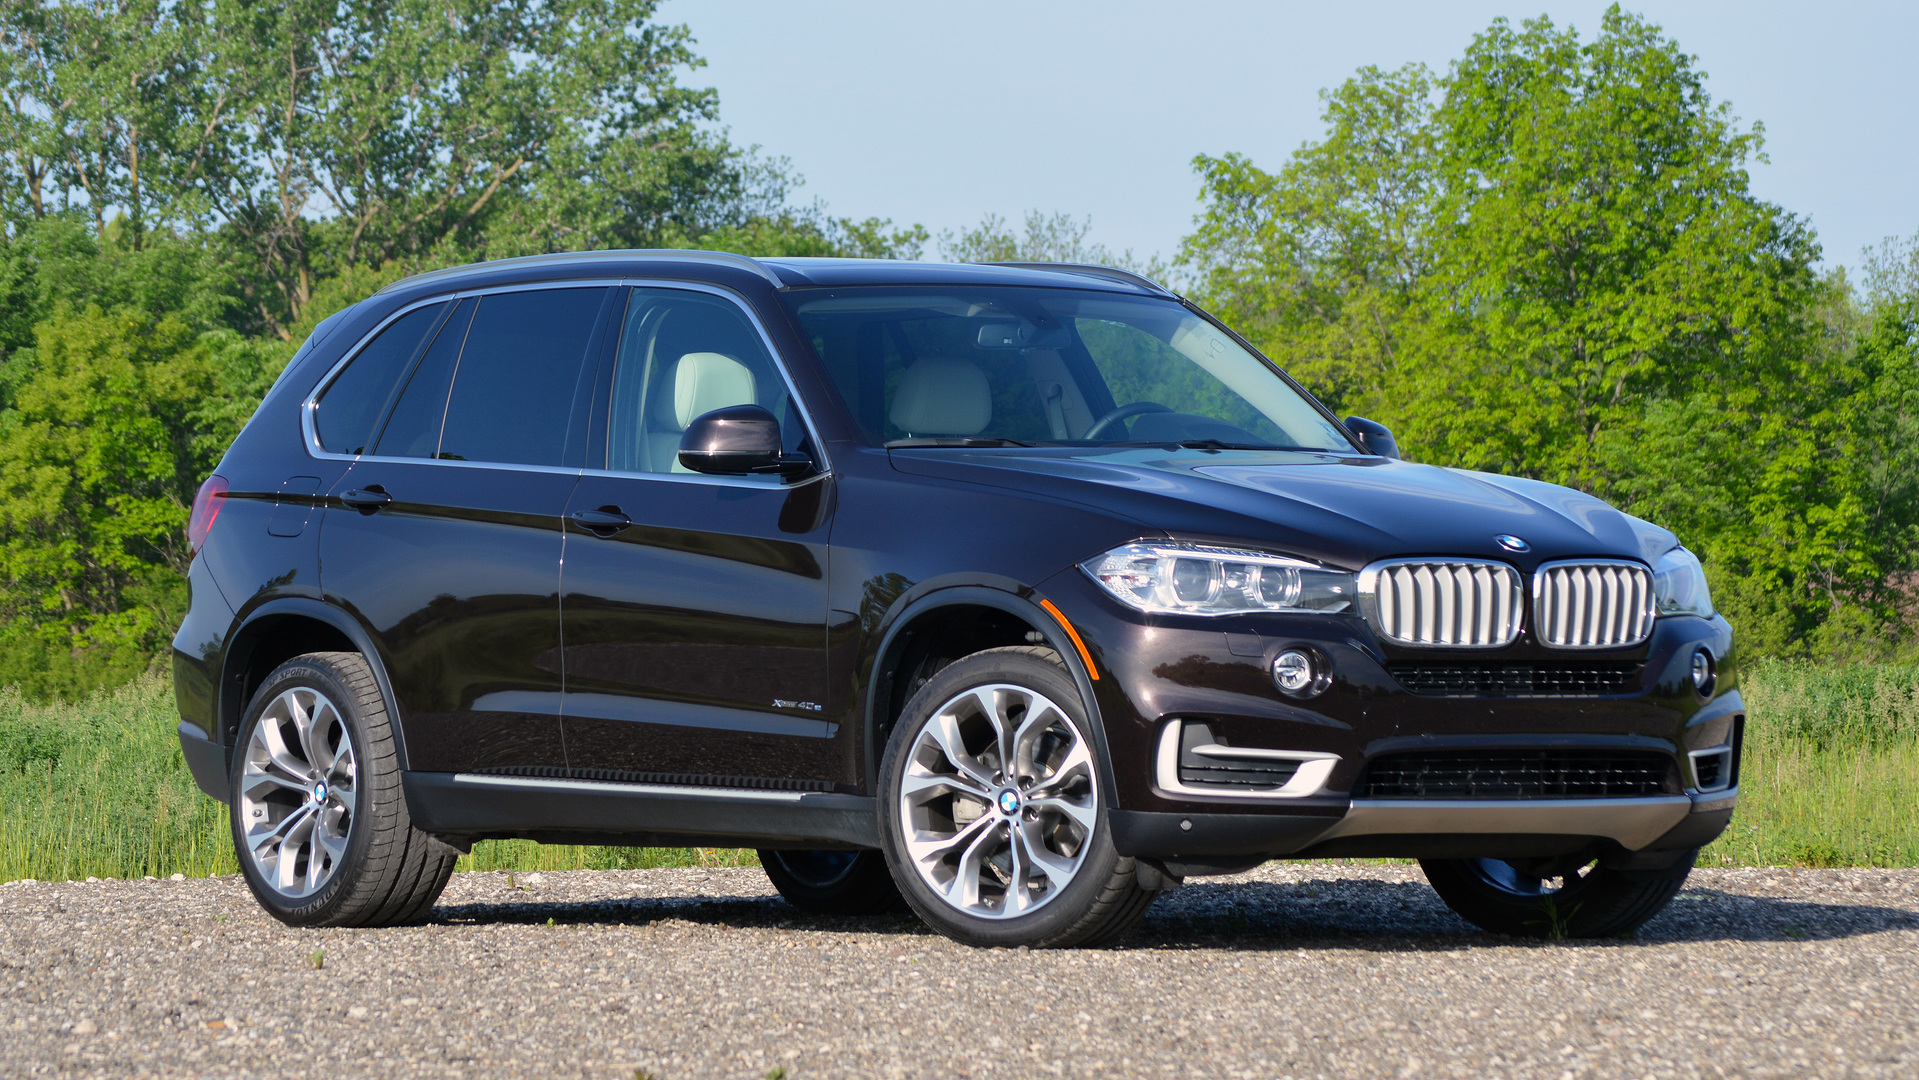 the bmw x5 is the uk's most stolen car